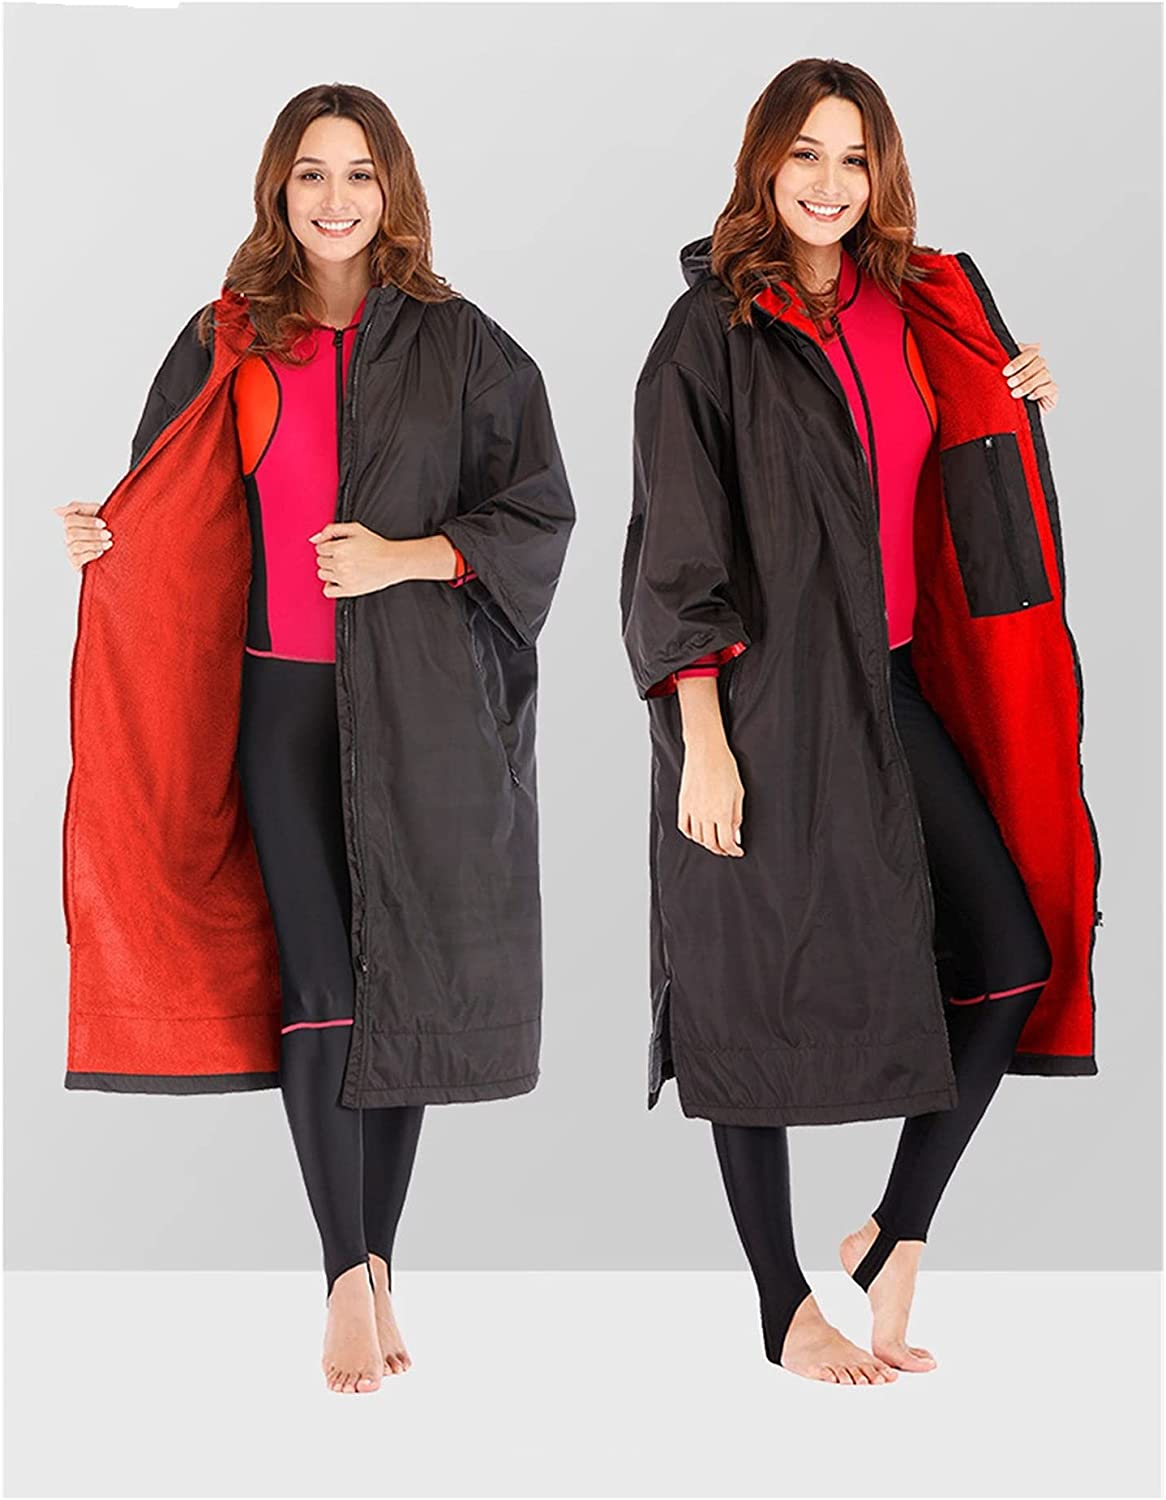 Fresno Mall PJRYC Large discharge sale New Windproof and Thick Cloak Warm Spo Outdoor Windbreaker